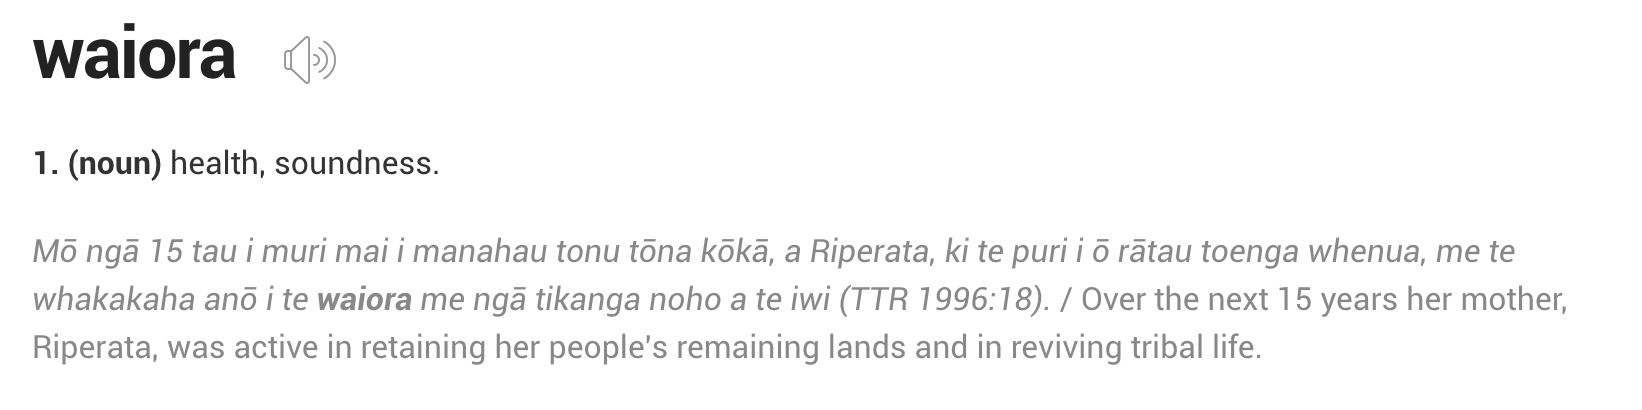 Waiora Meaning Screenshot